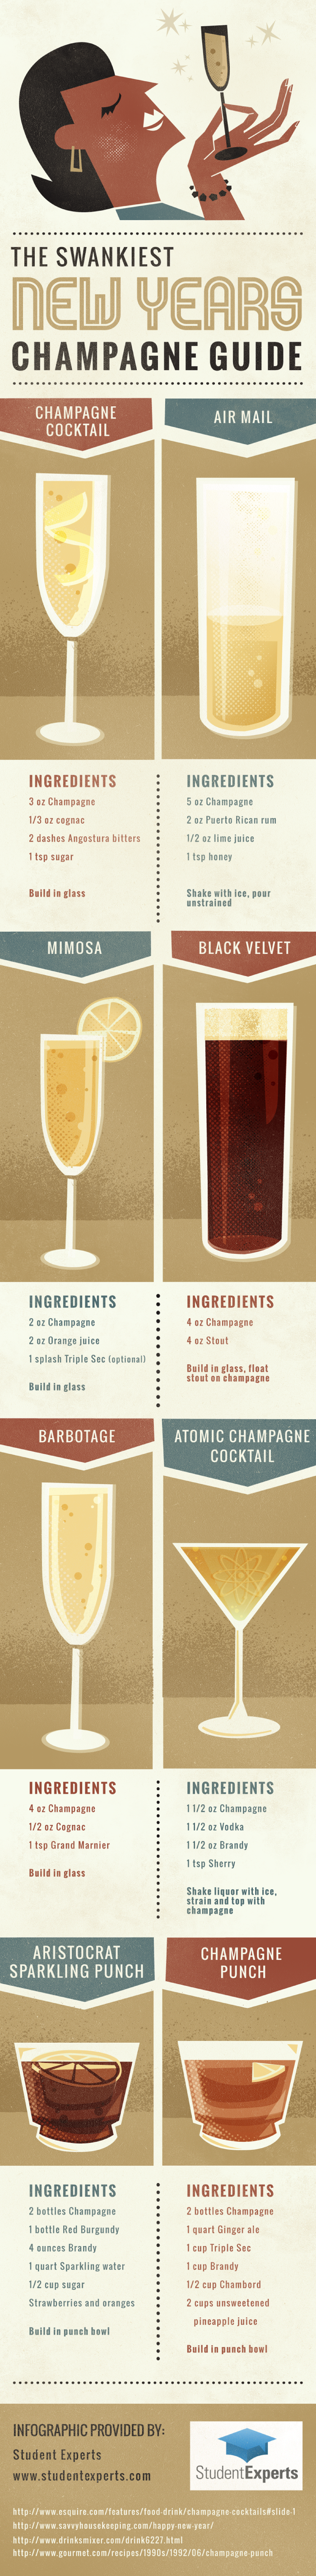 The Swankiest New Year's Champagne Guide #infographic